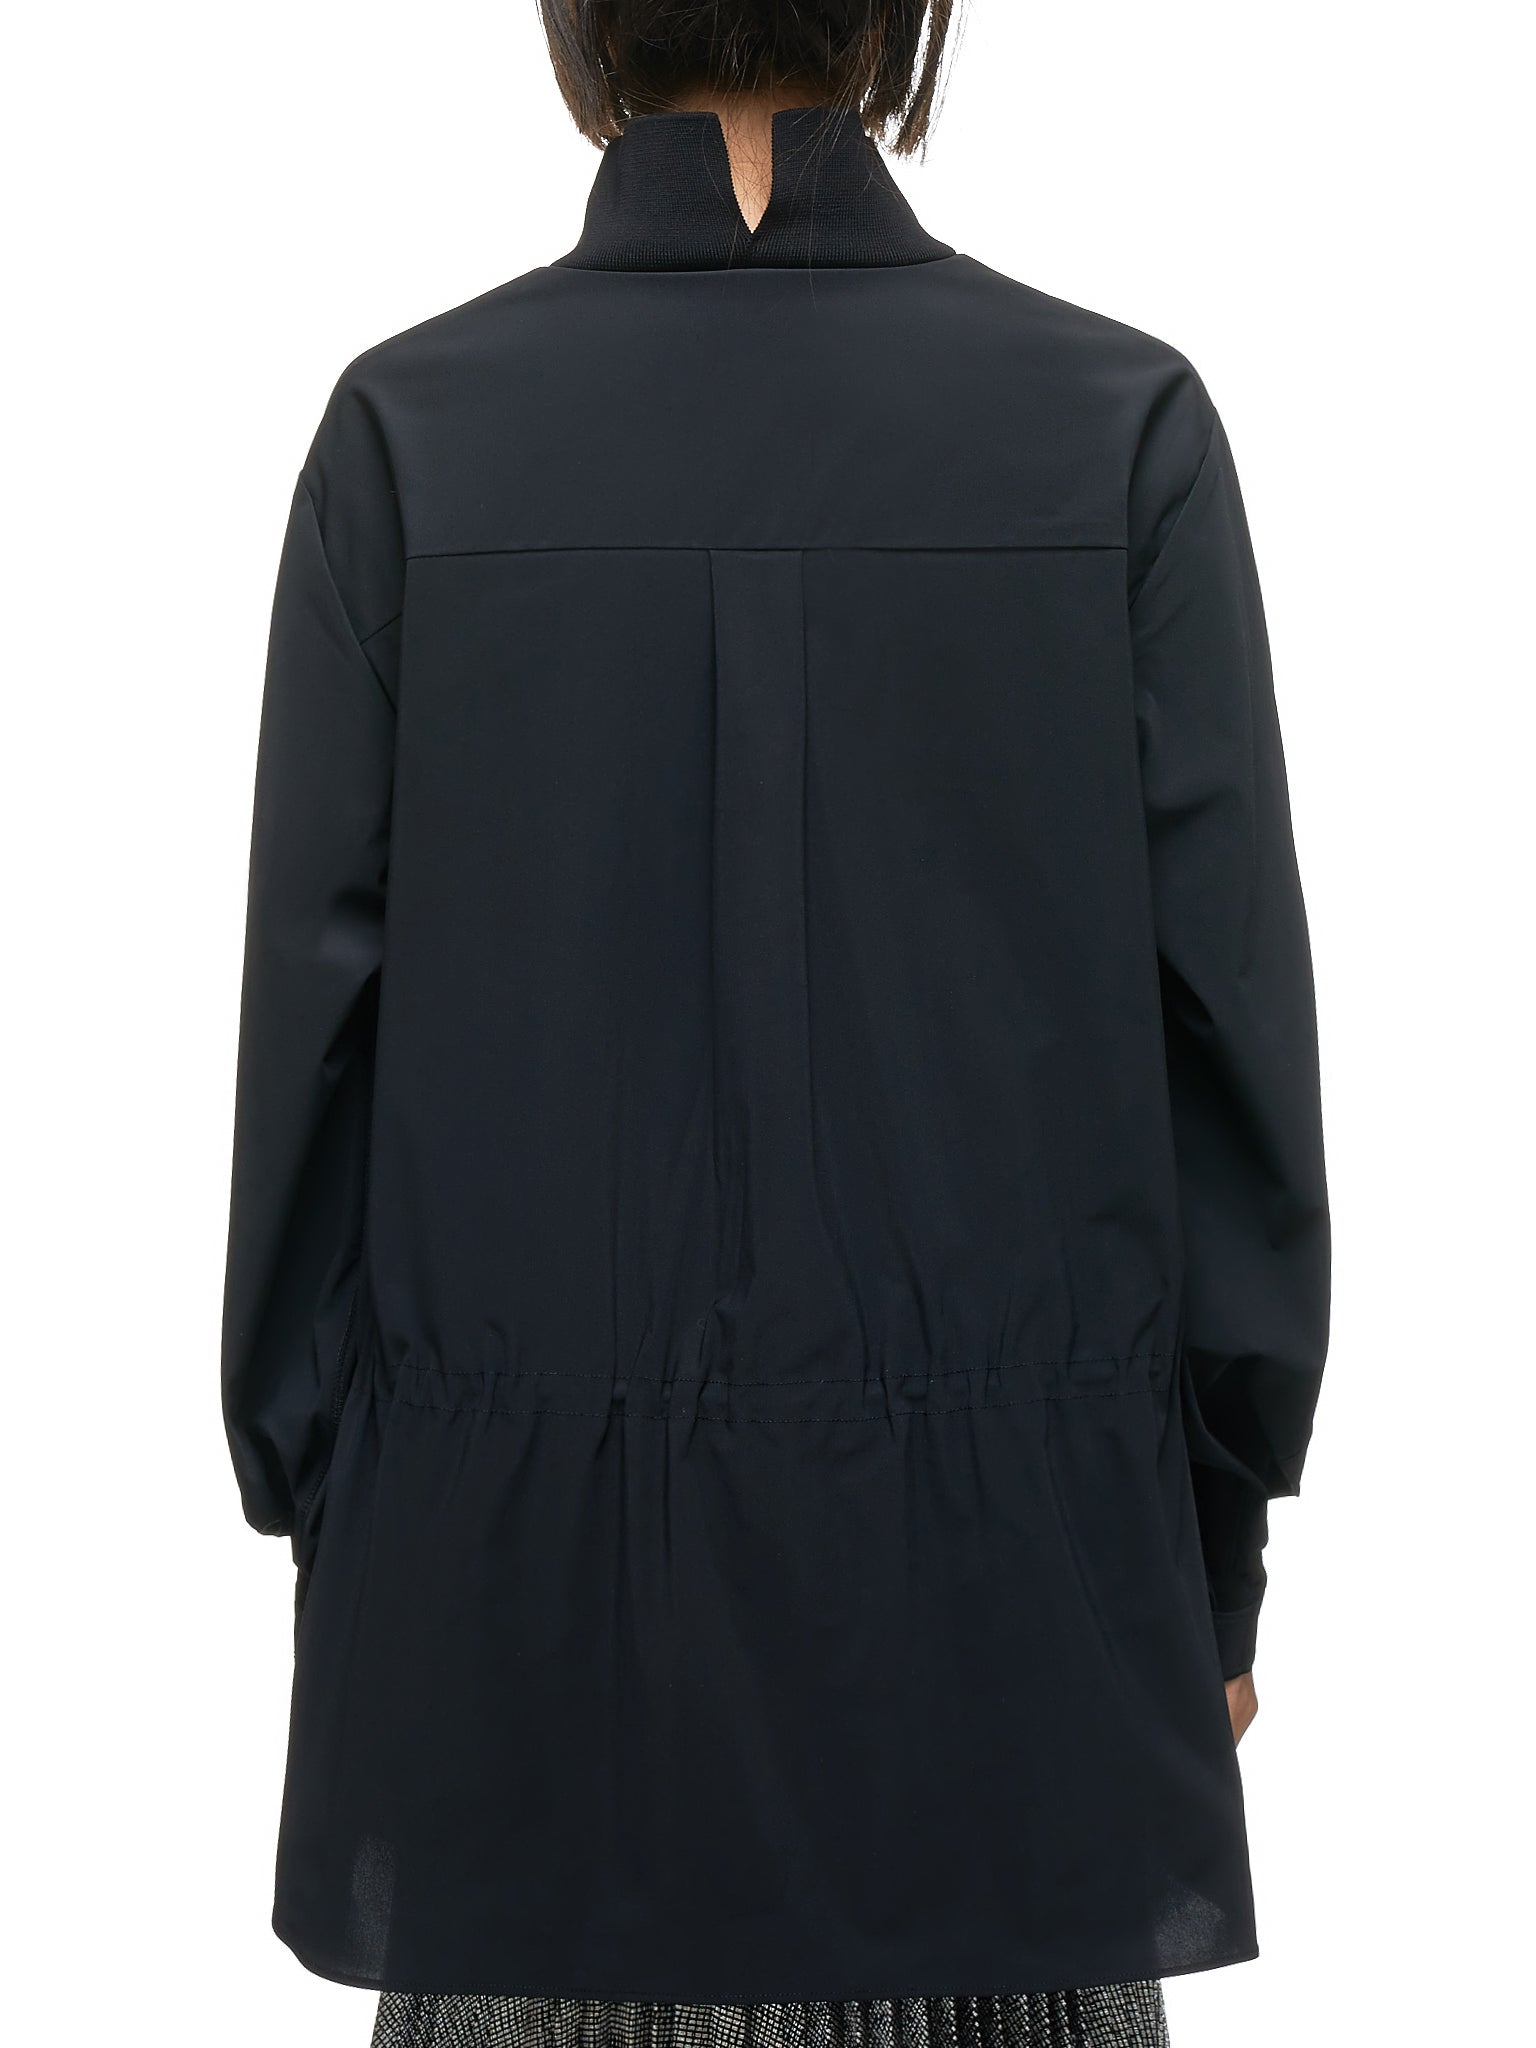 Toga Archives Pullover - Hlorenzo Back